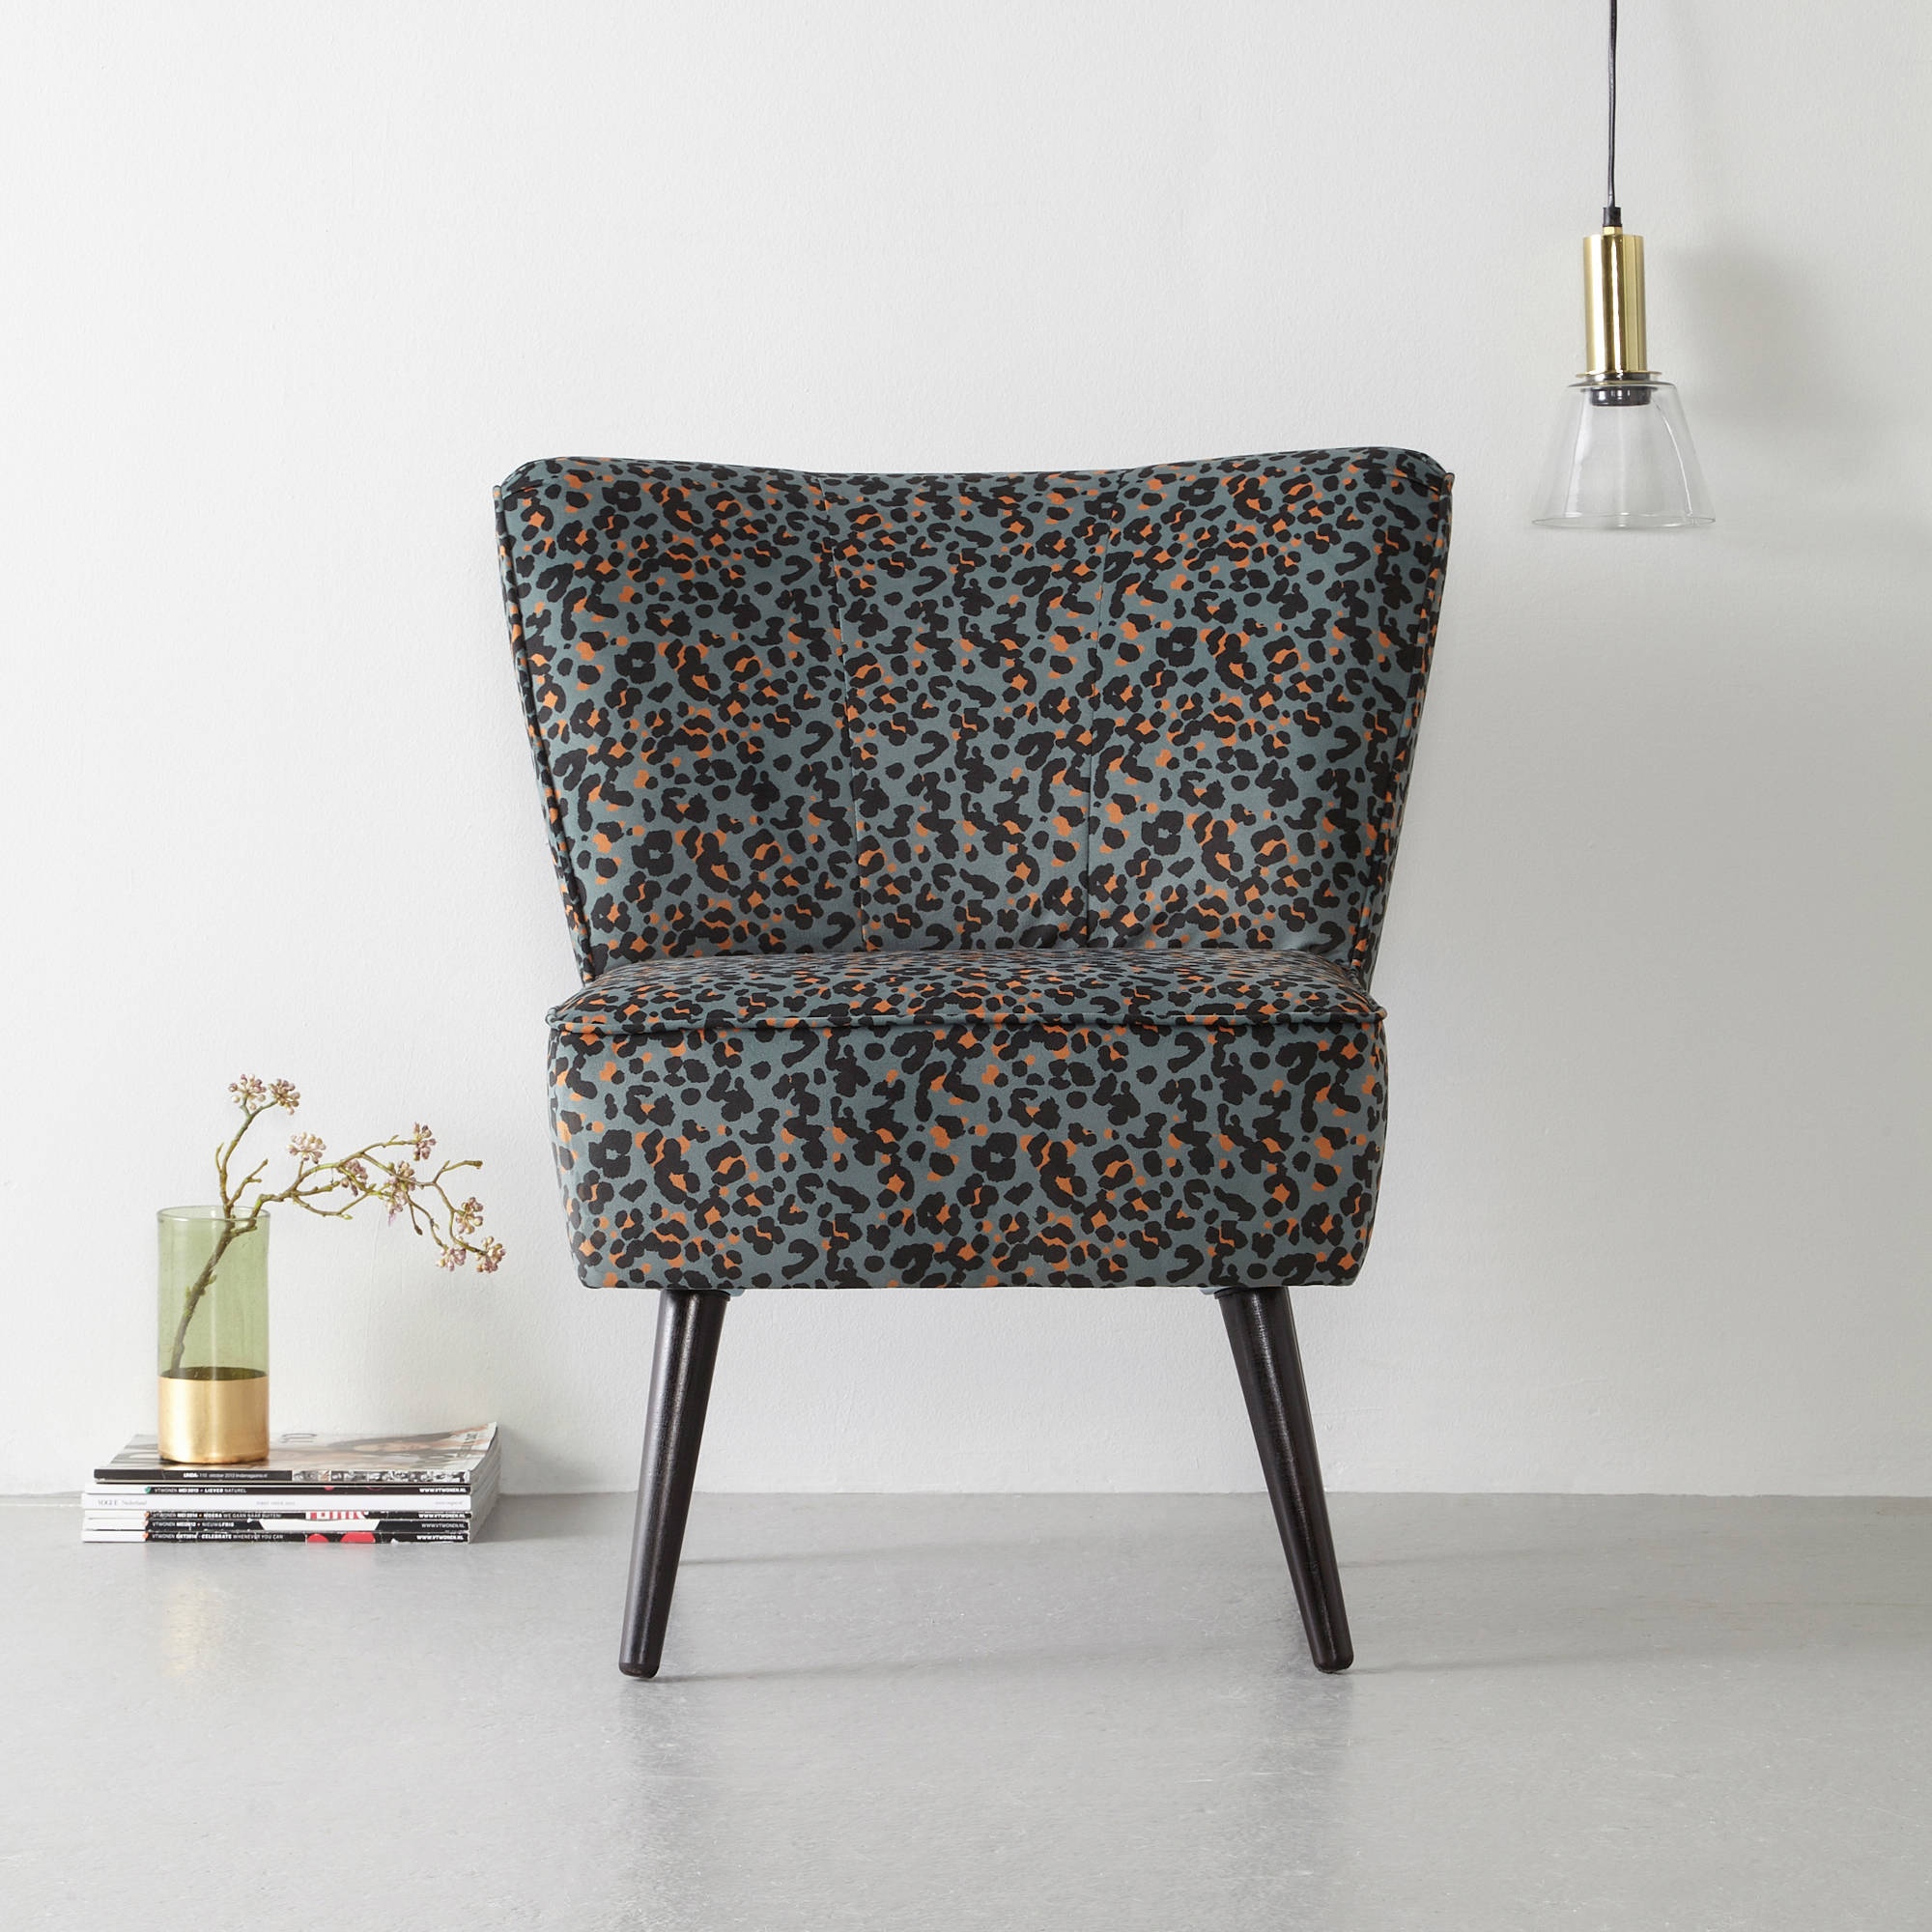 whkmp's own fauteuil Coco velours